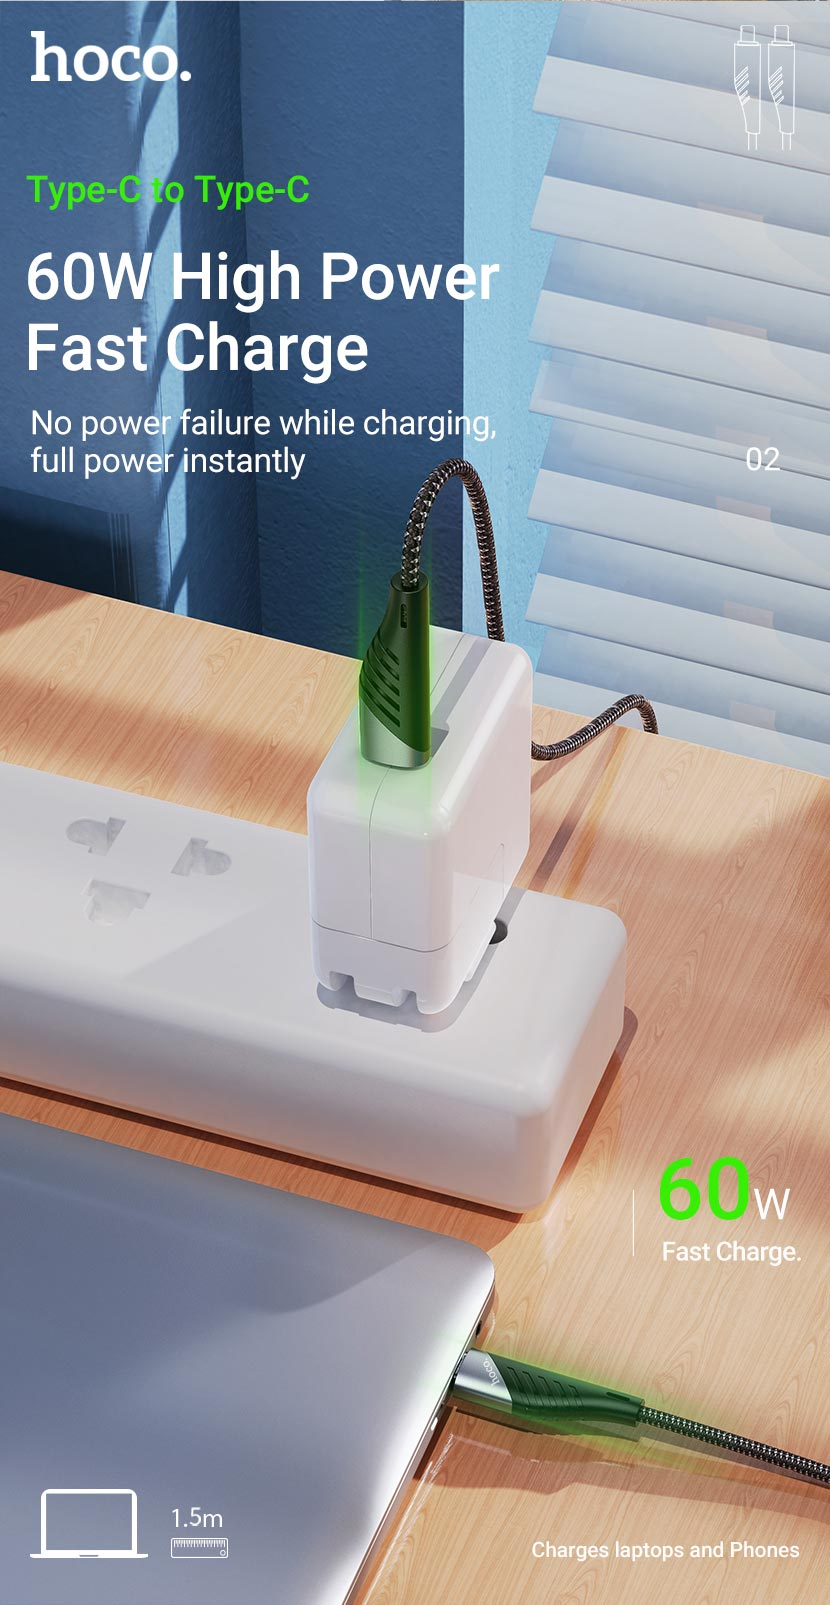 hoco news u95 freeway charging data cable 60w type c to type c en